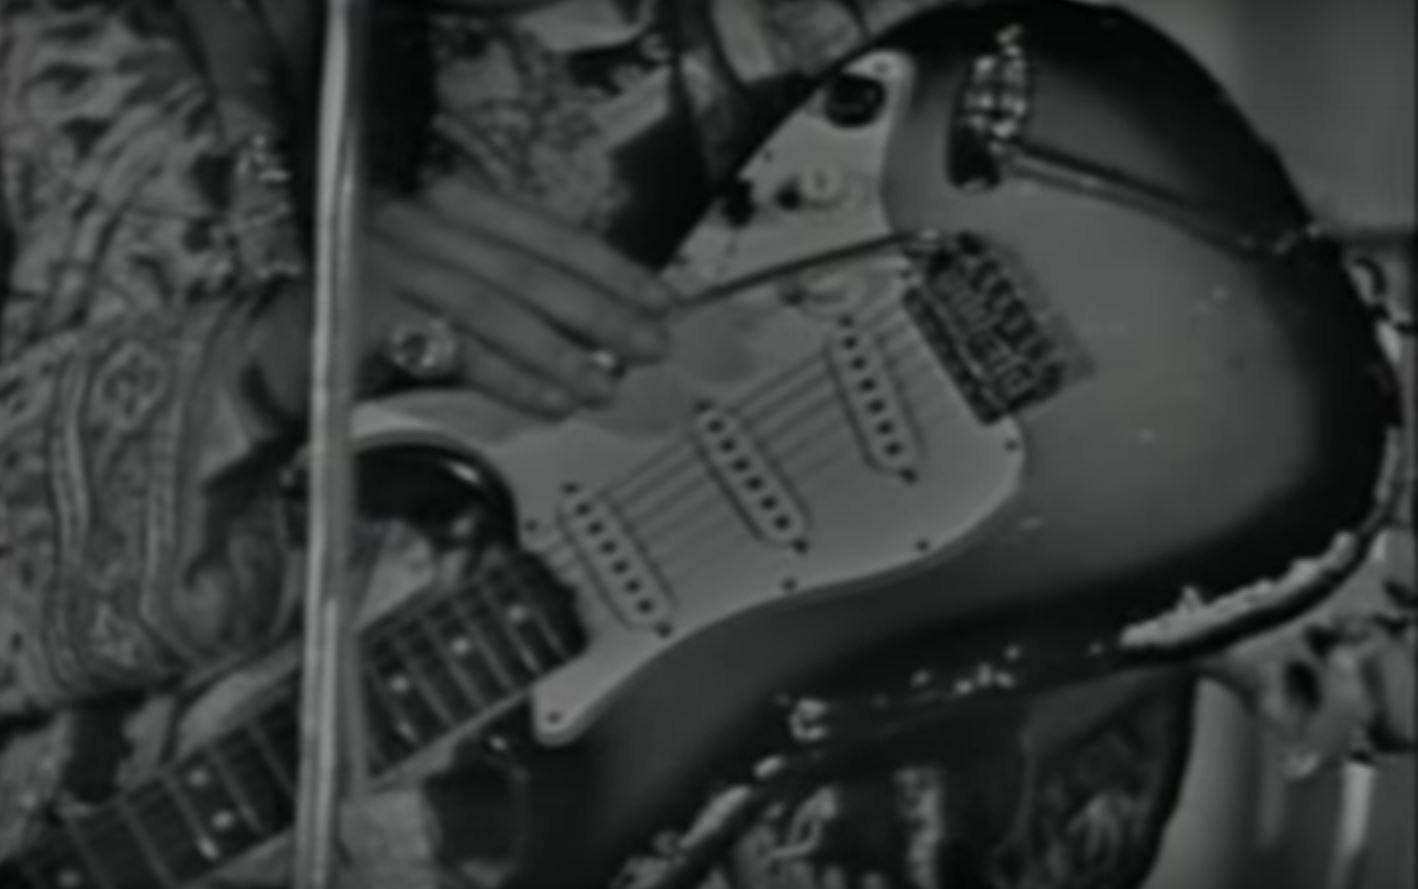 "jimi hendrix s guitars and gear a still from the video showing the scratch marks on the body of the stratocaster photo source jimi hendrix ""wild thing"" 1967 05 11"